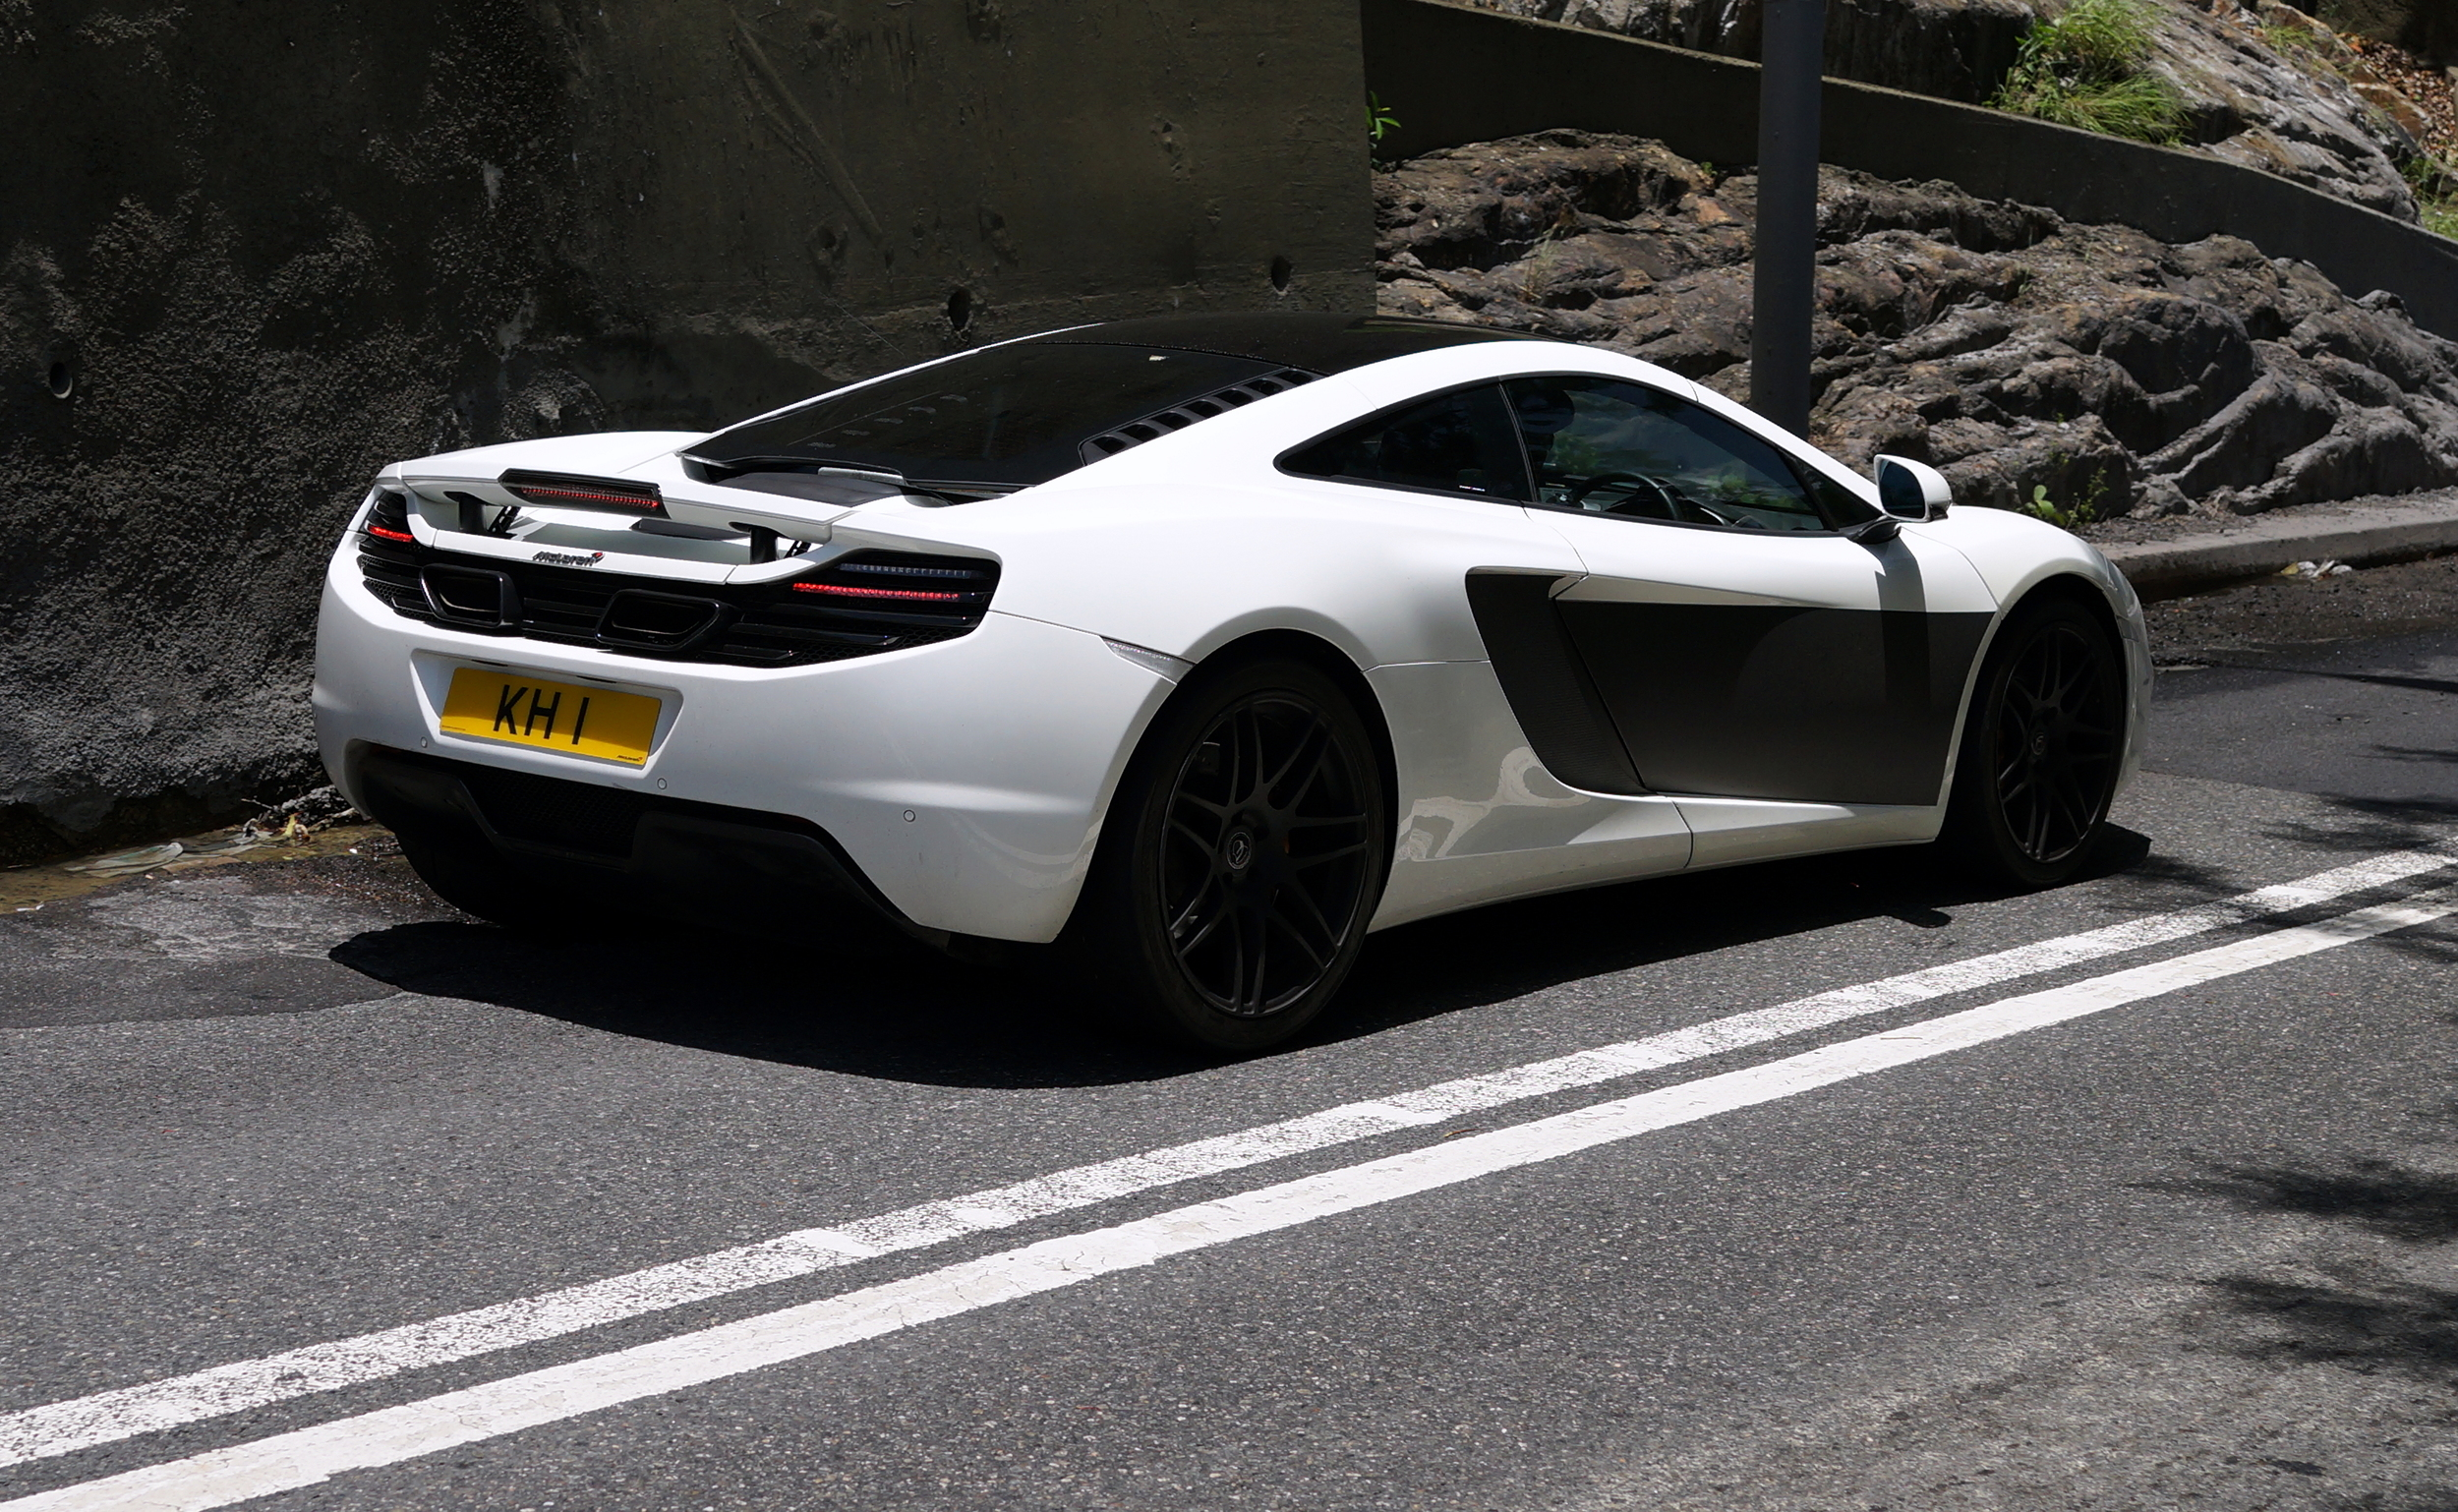 Oh lordy, I just love the McLaren sports car and this is a great colour scheme as well.